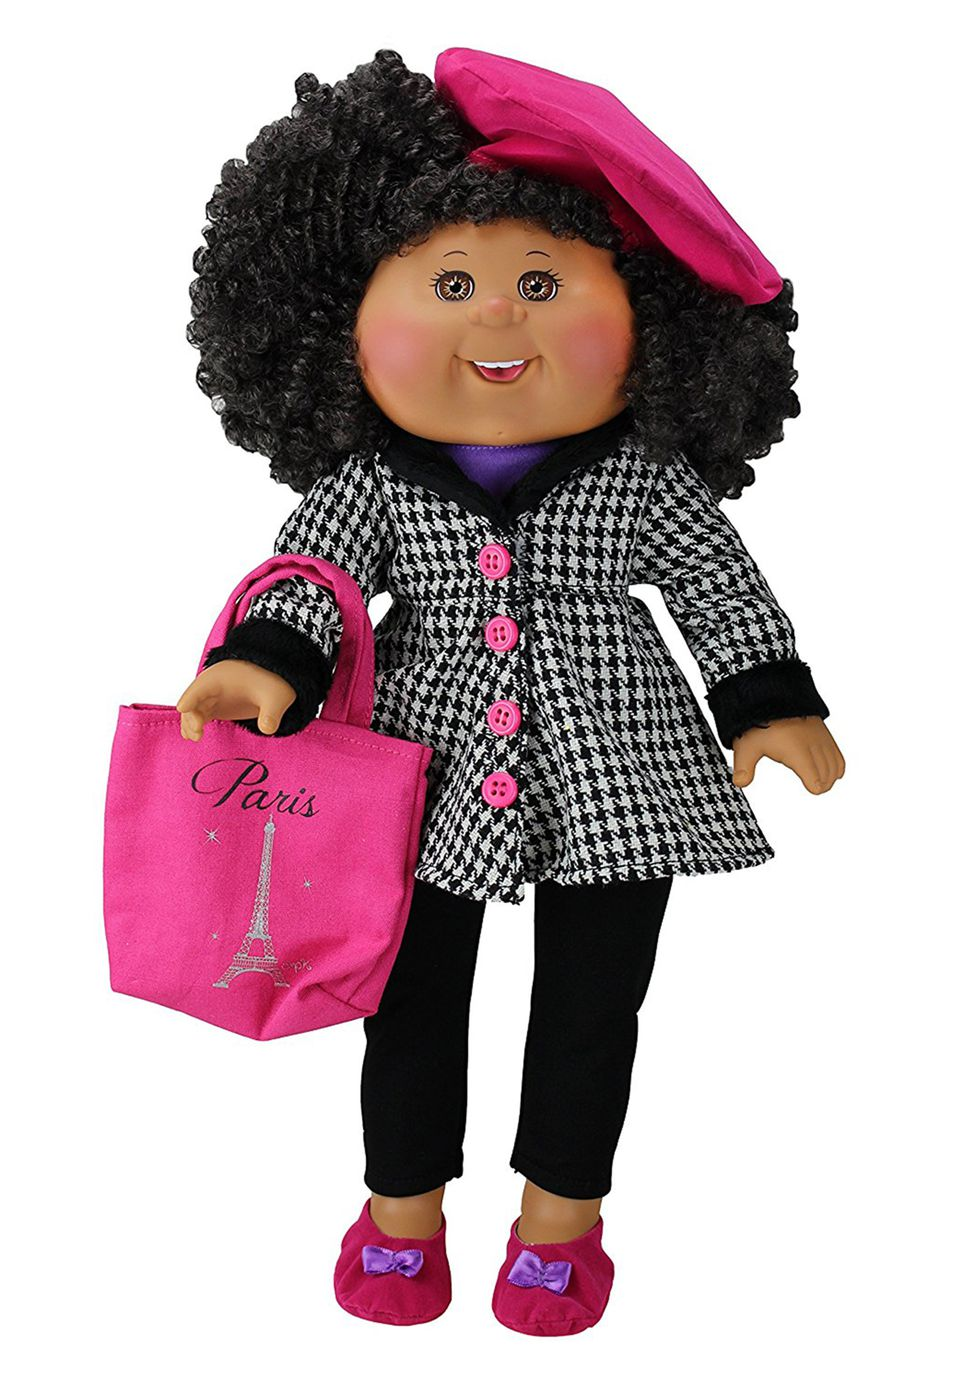 Doll Profile: All About Cabbage Patch Kids